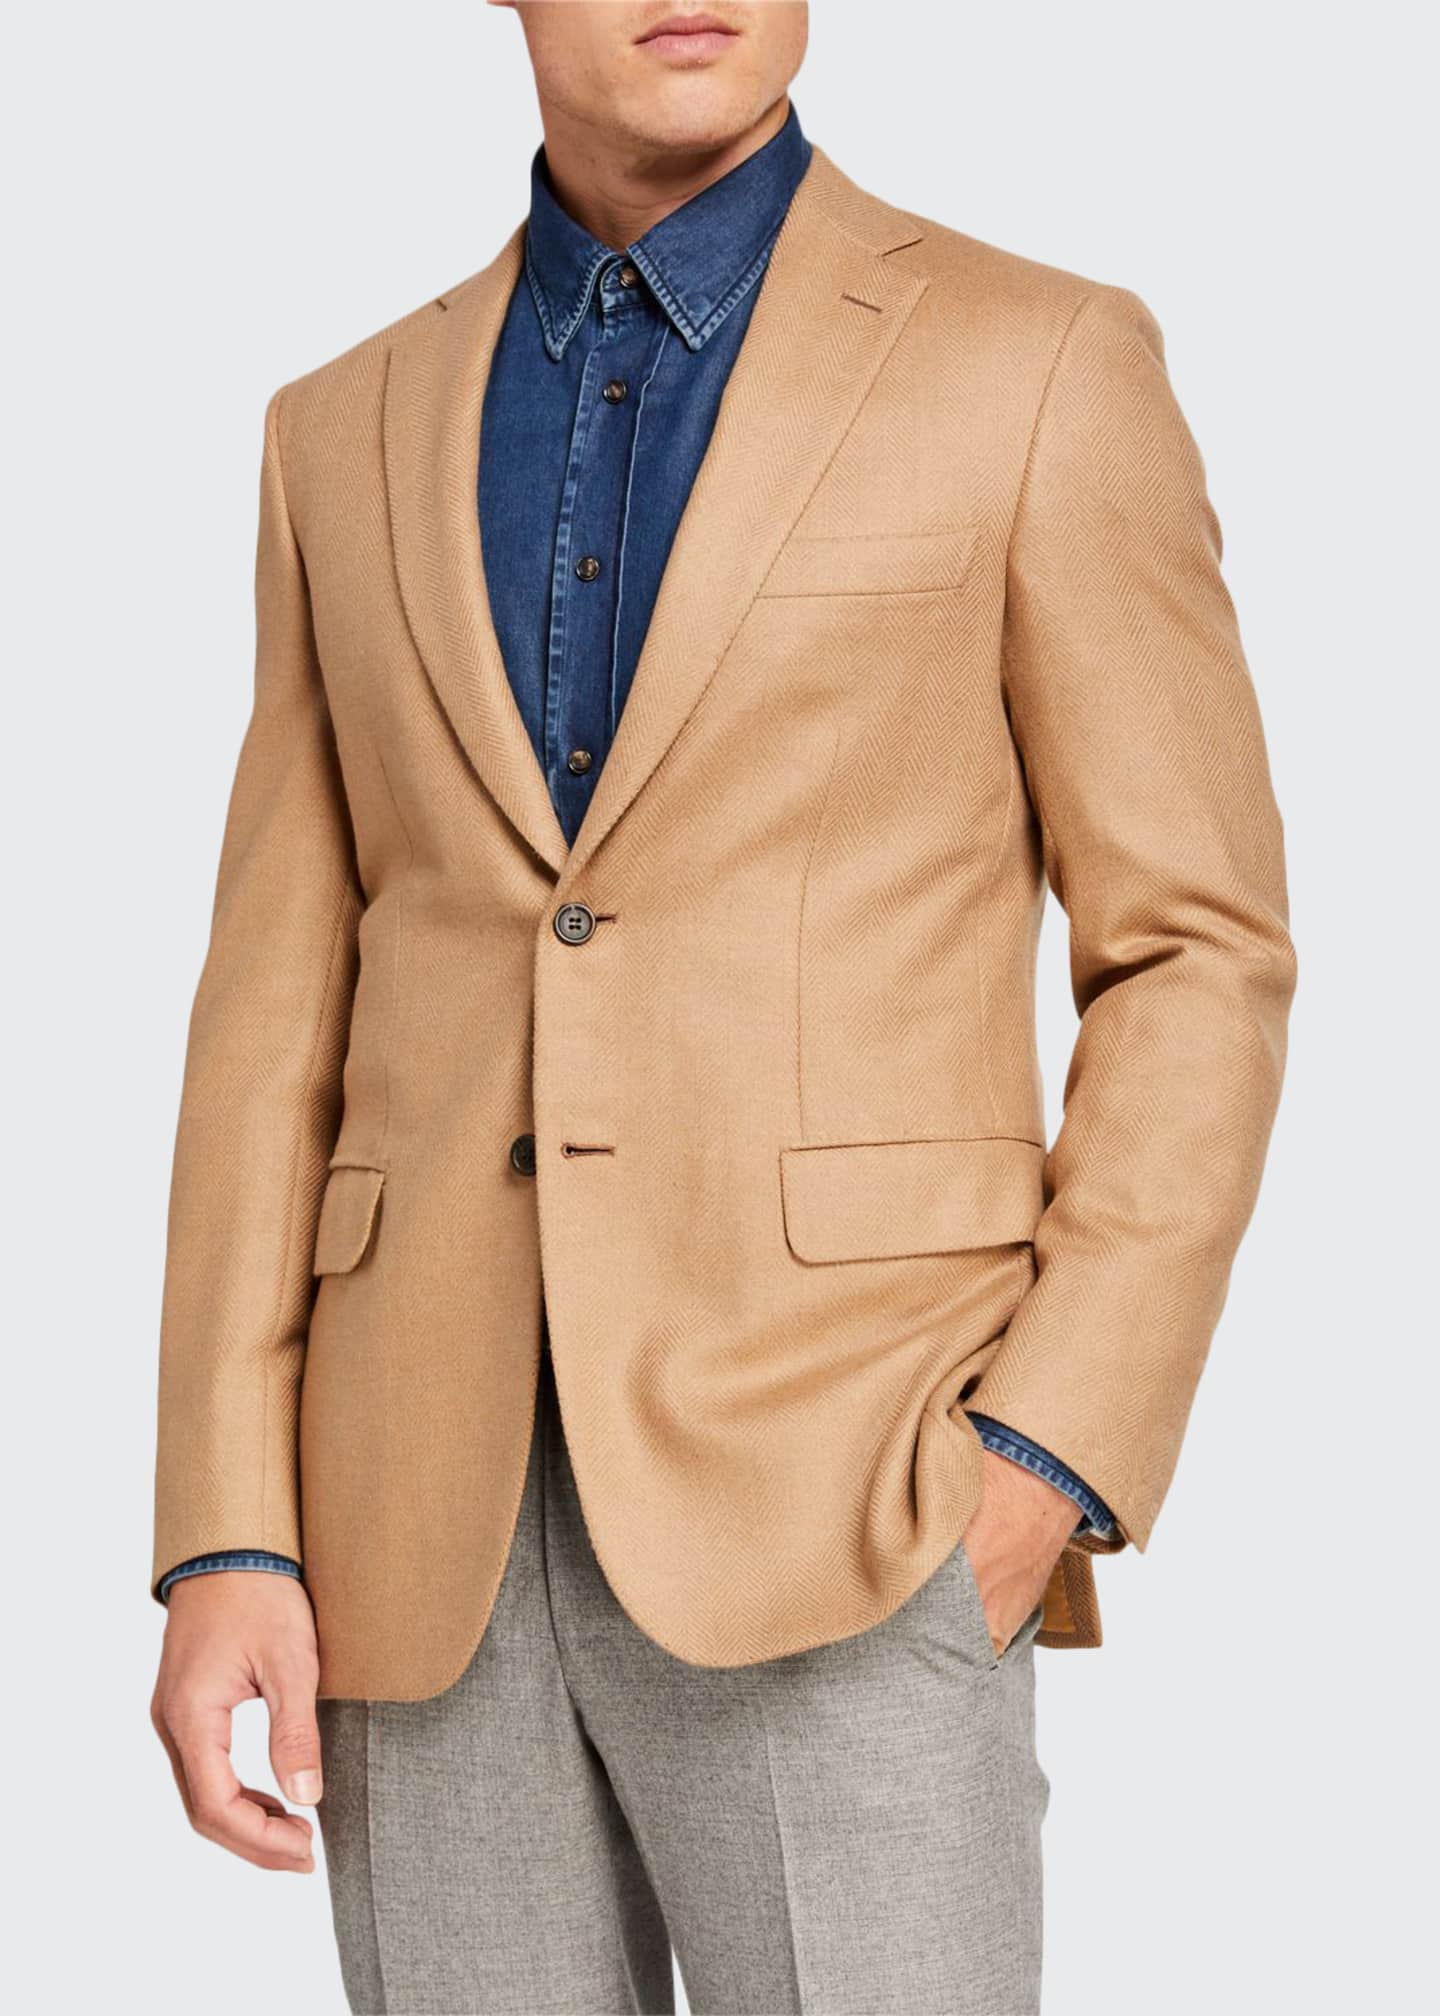 Brioni Men's Camel Herringbone Two-Button Jacket